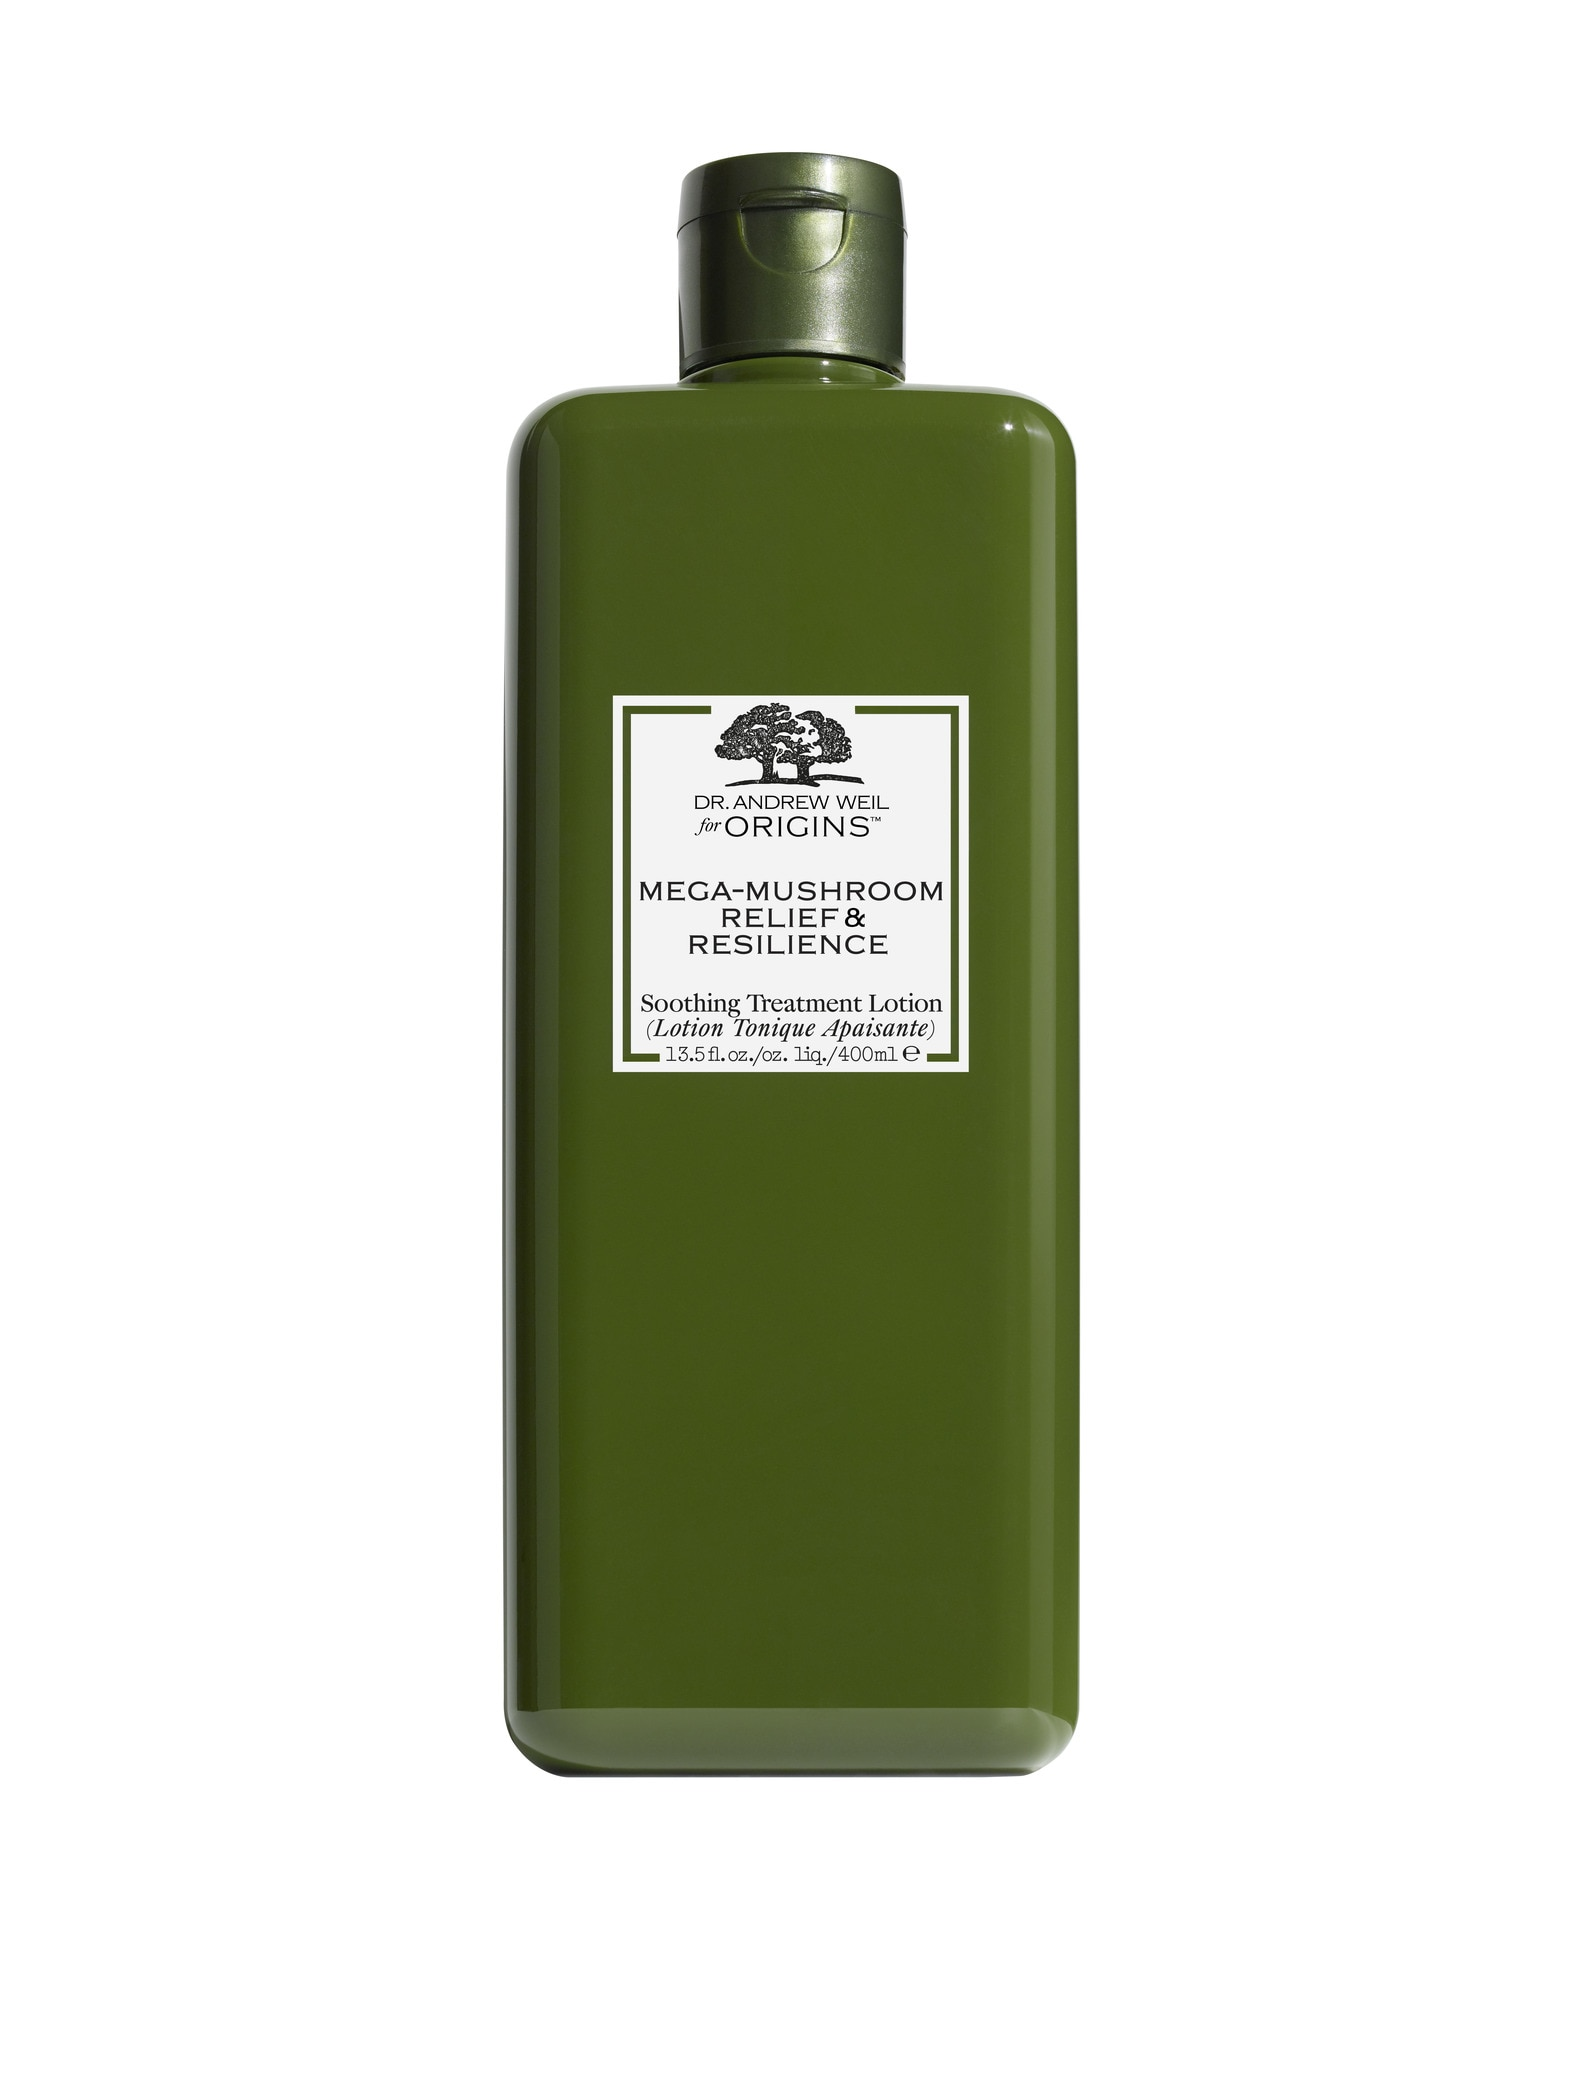 DR. ANDREW WEIL FOR ORIGINS™ MEGA-MUSHROOM RELIEF & RESILIENCE SOOTHING TREATMENT LOTION